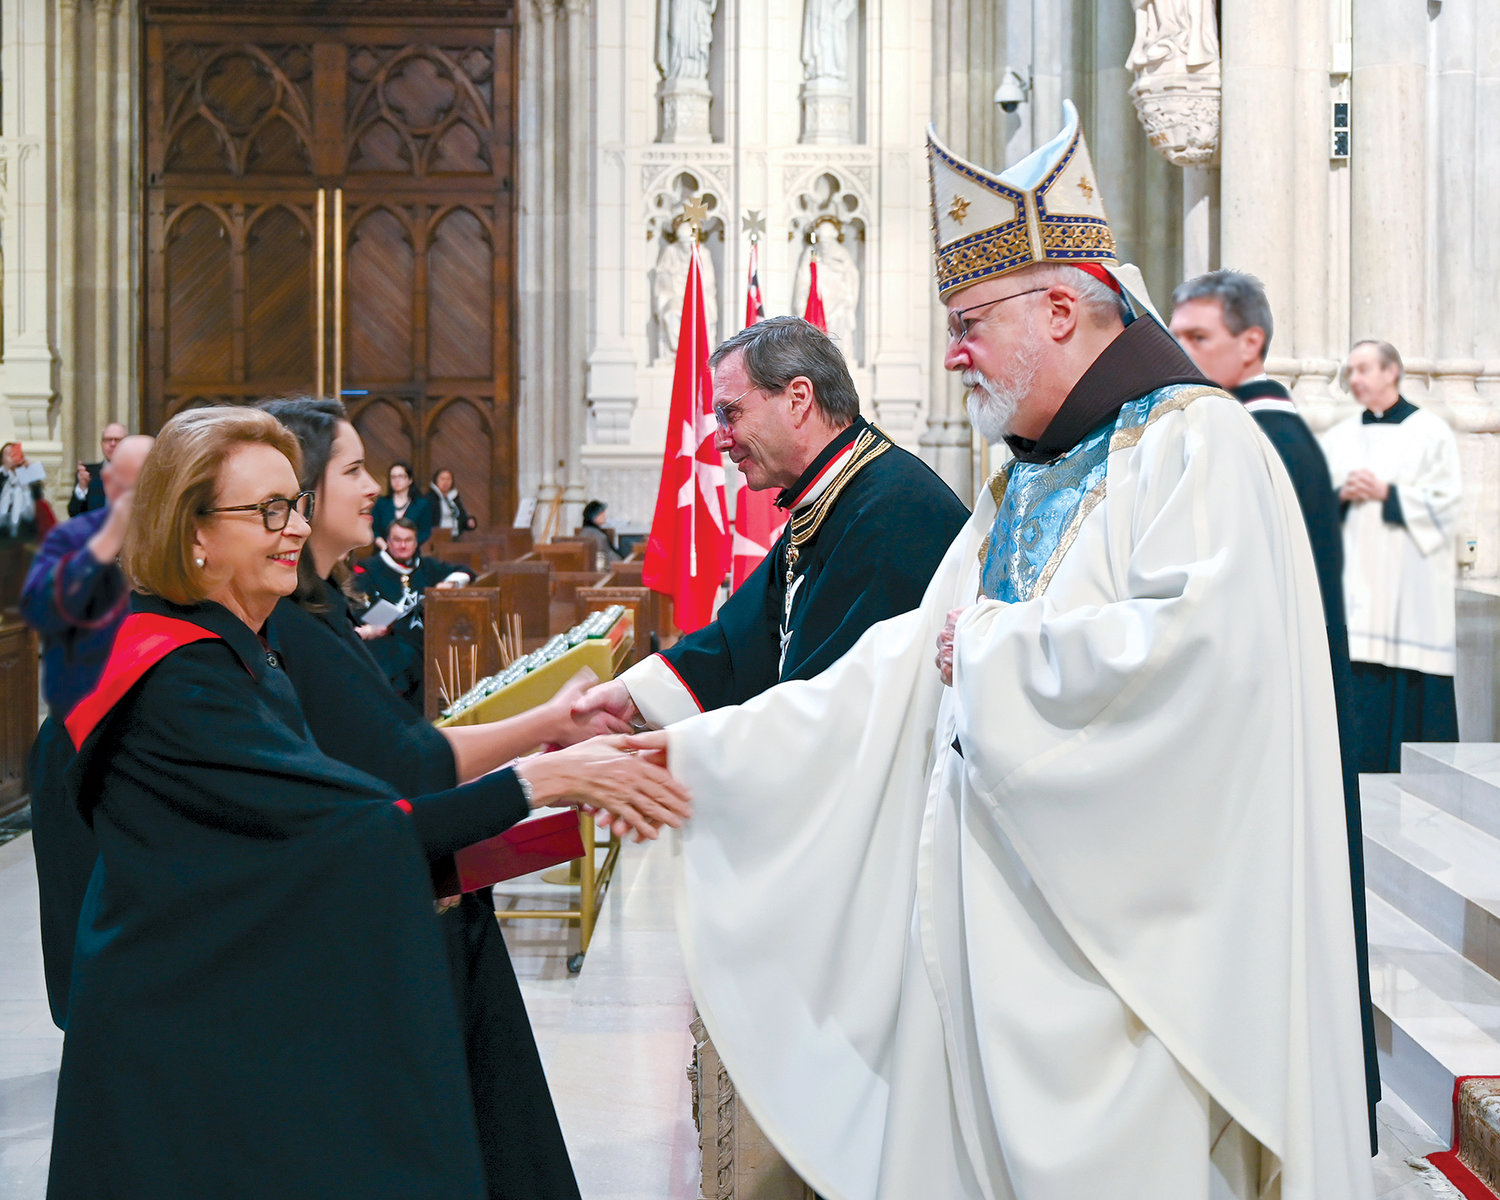 Peter J. Kelly, president of the American Association of the Order of Malta, presents the insignia cross of the order to newly invested dames during the Solemn Liturgy of Investiture Nov. 15 at St. Patrick's Cathedral. Boston Cardinal Séan O'Malley, who served as principal celebrant and homilist, offers congratulations.